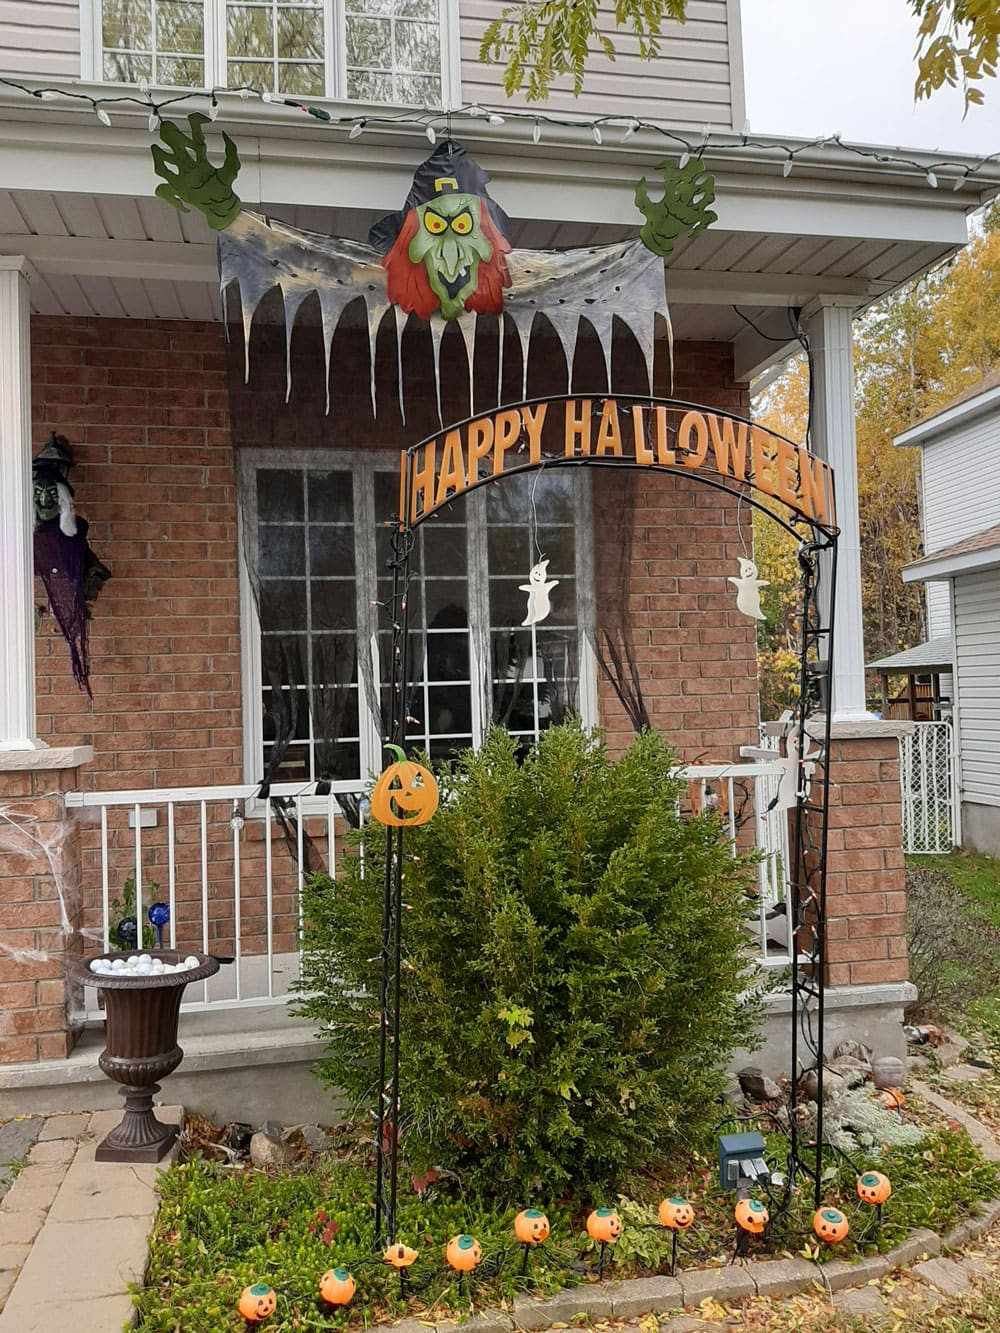 Halloween on Sirroco Crescent in Timbermere